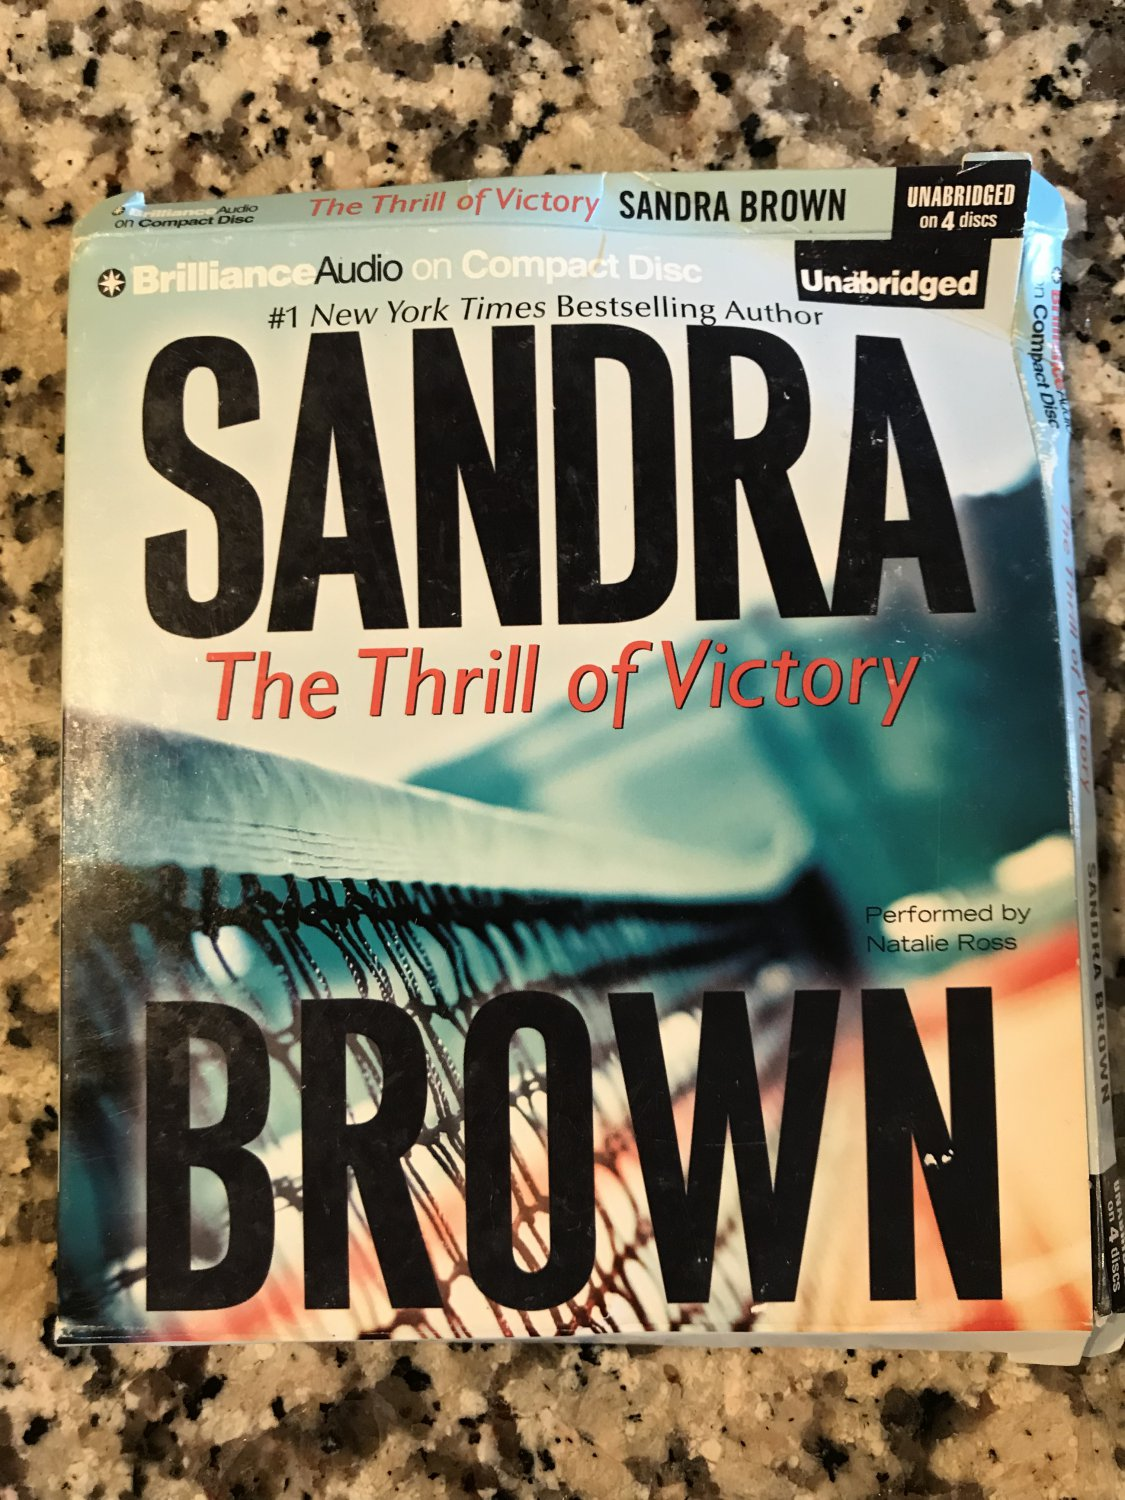 The Thrill of Victory [audio CD] Brown, Sandra,Ross, Natalie [Oct 01, 2013]